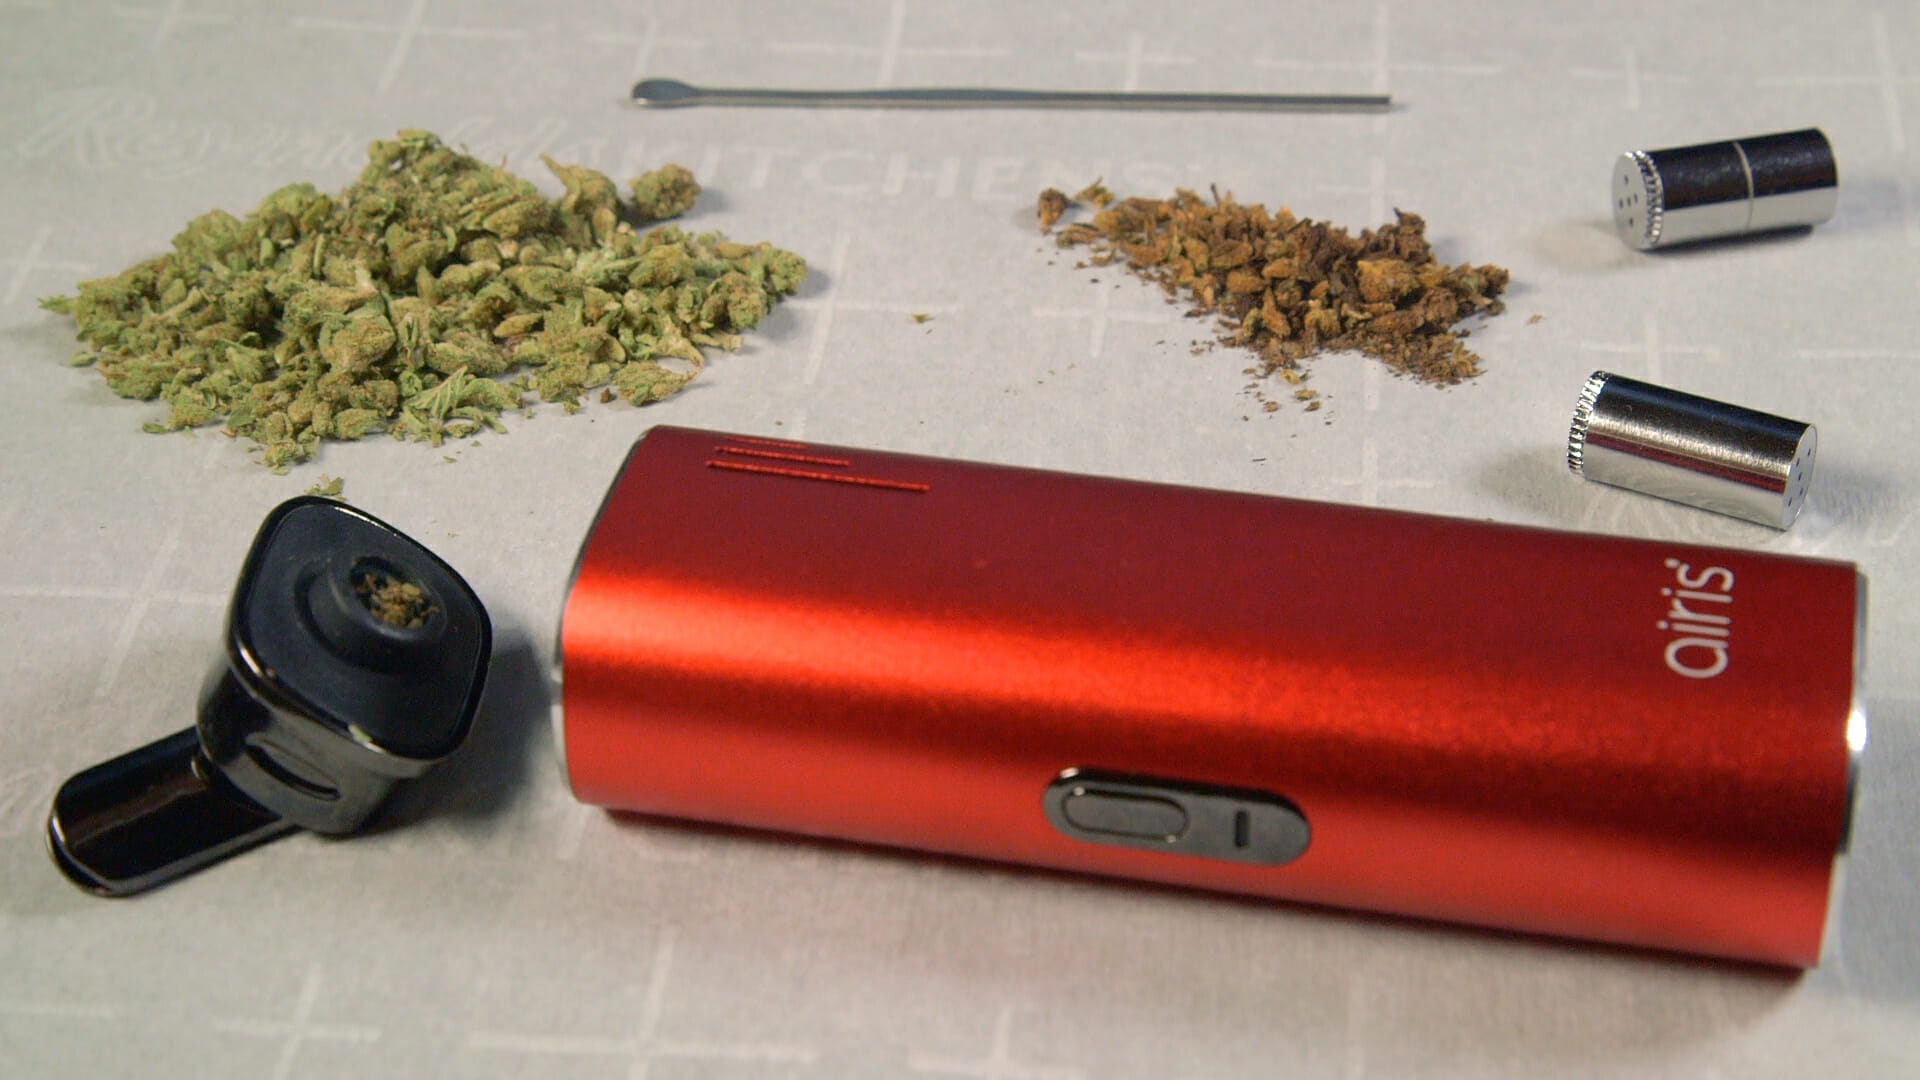 airis-switch-vaporizer-review-thumbnail-1